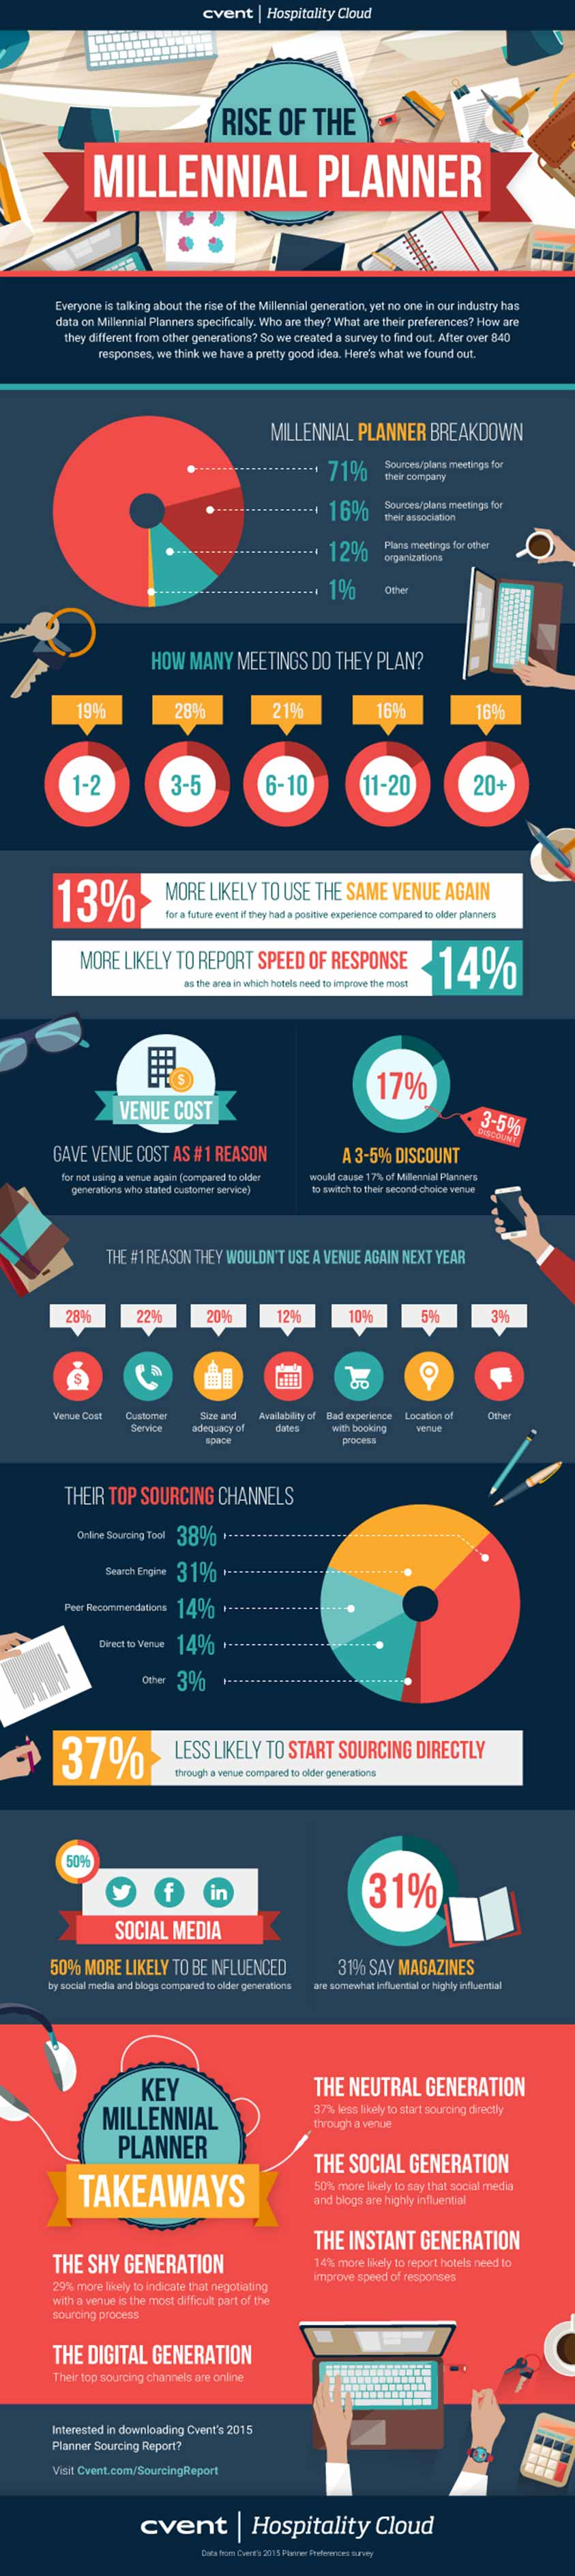 Millennial_Planner_Infographic_view_enlarge